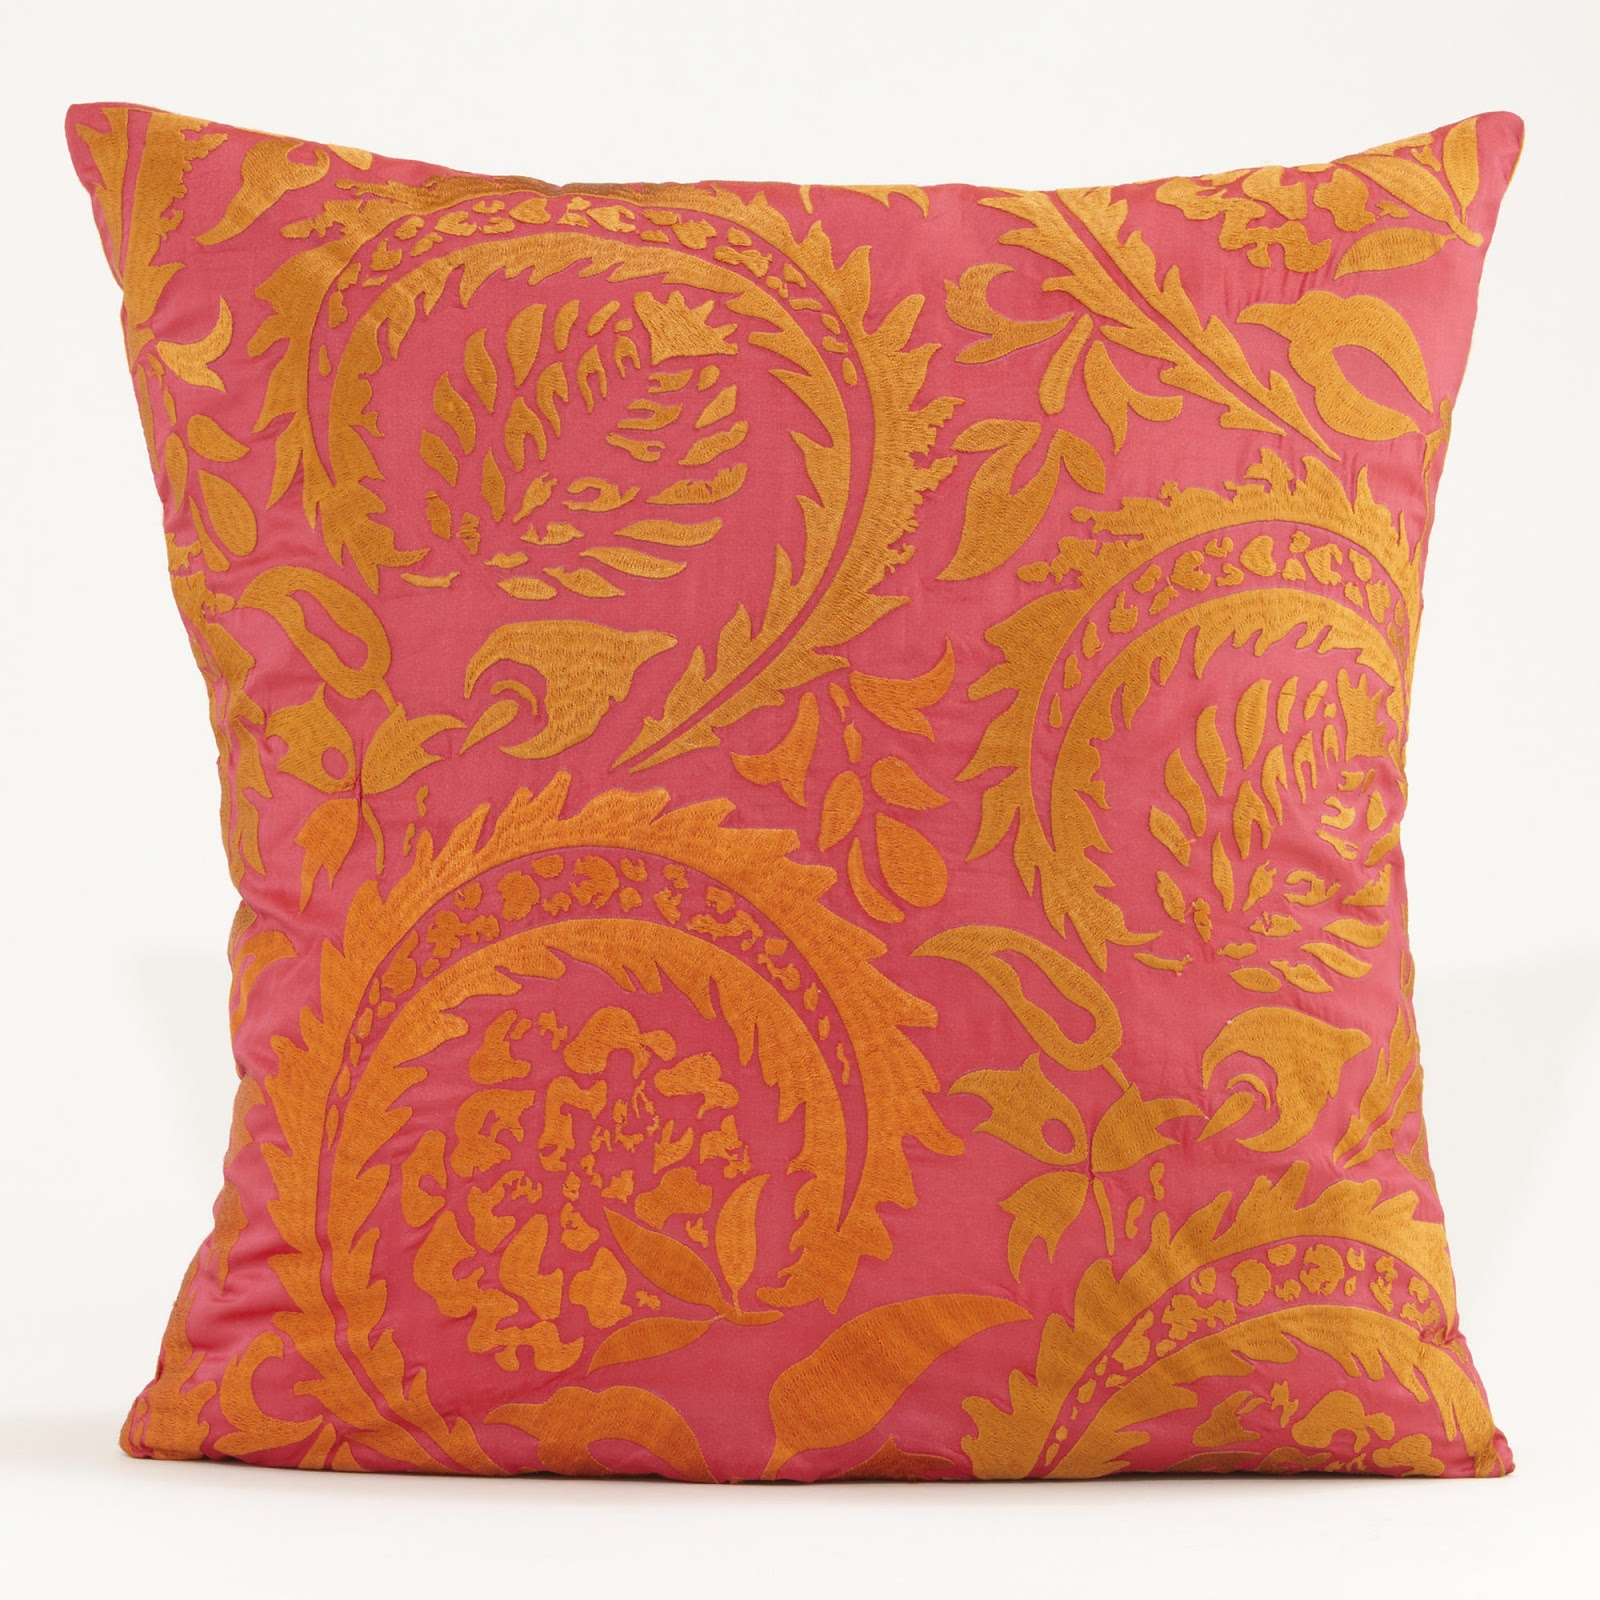 Black Friday Throw Pillows : 2012 Black Friday Home Decor Deals Driven by Decor